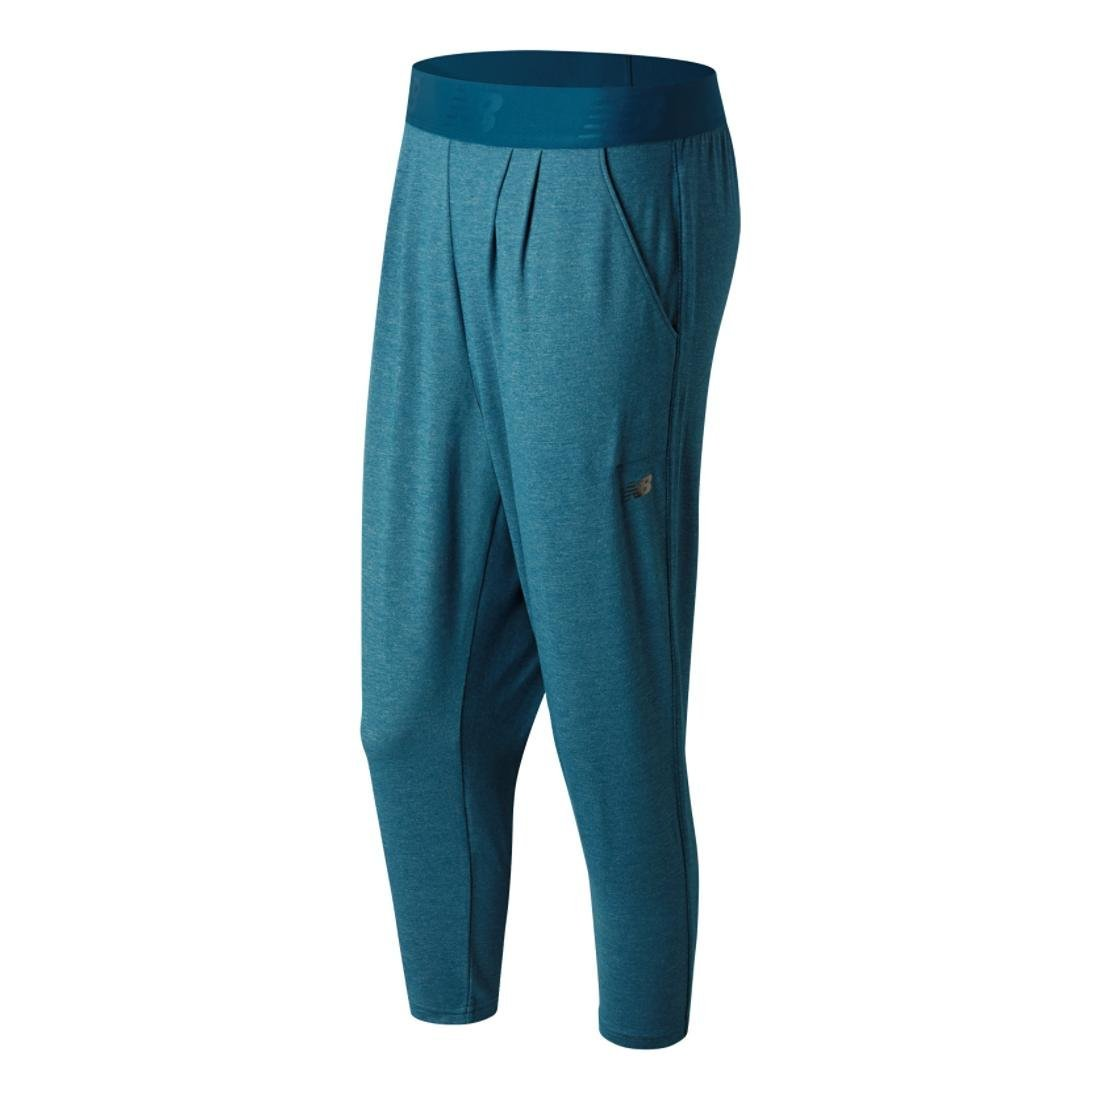 New Balance Women's Slouch Dance Pant